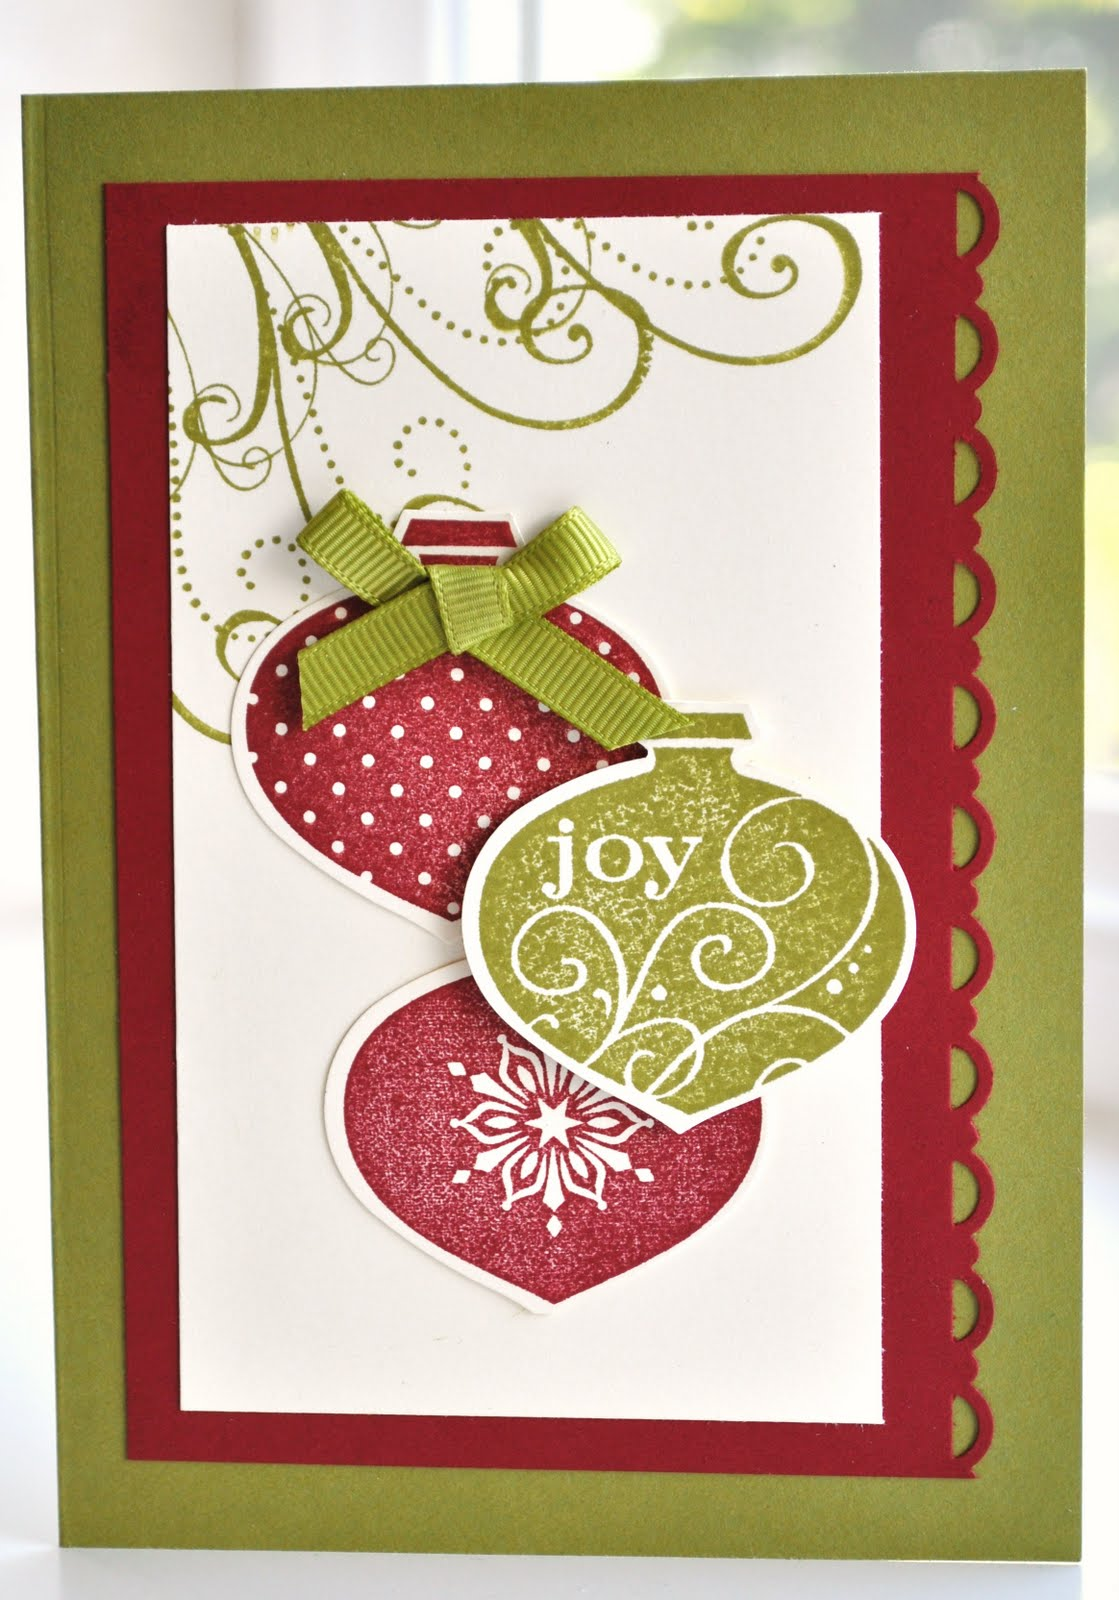 Christmas Card Making Class: love-to-stamp.blogspot.com/2011/07/christmas-card-making-class.html